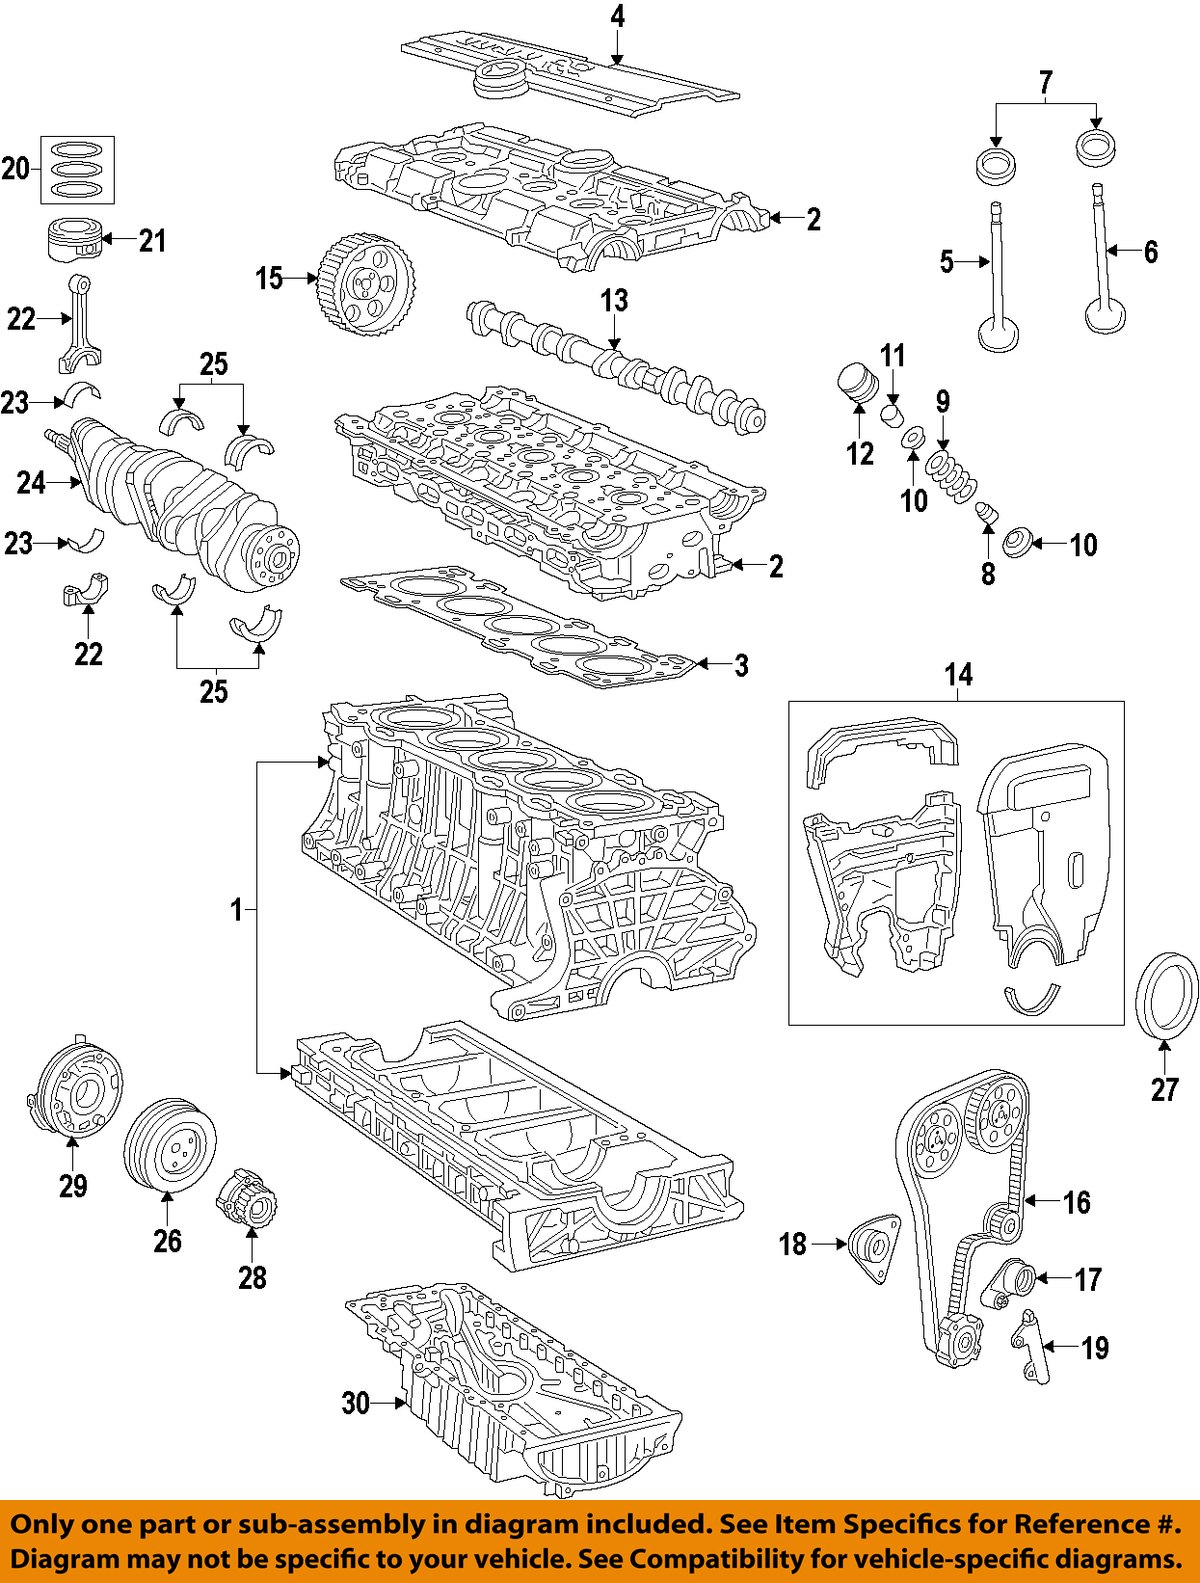 2000 volvo s80 engine diagram how to make single line xc90 cooling system free